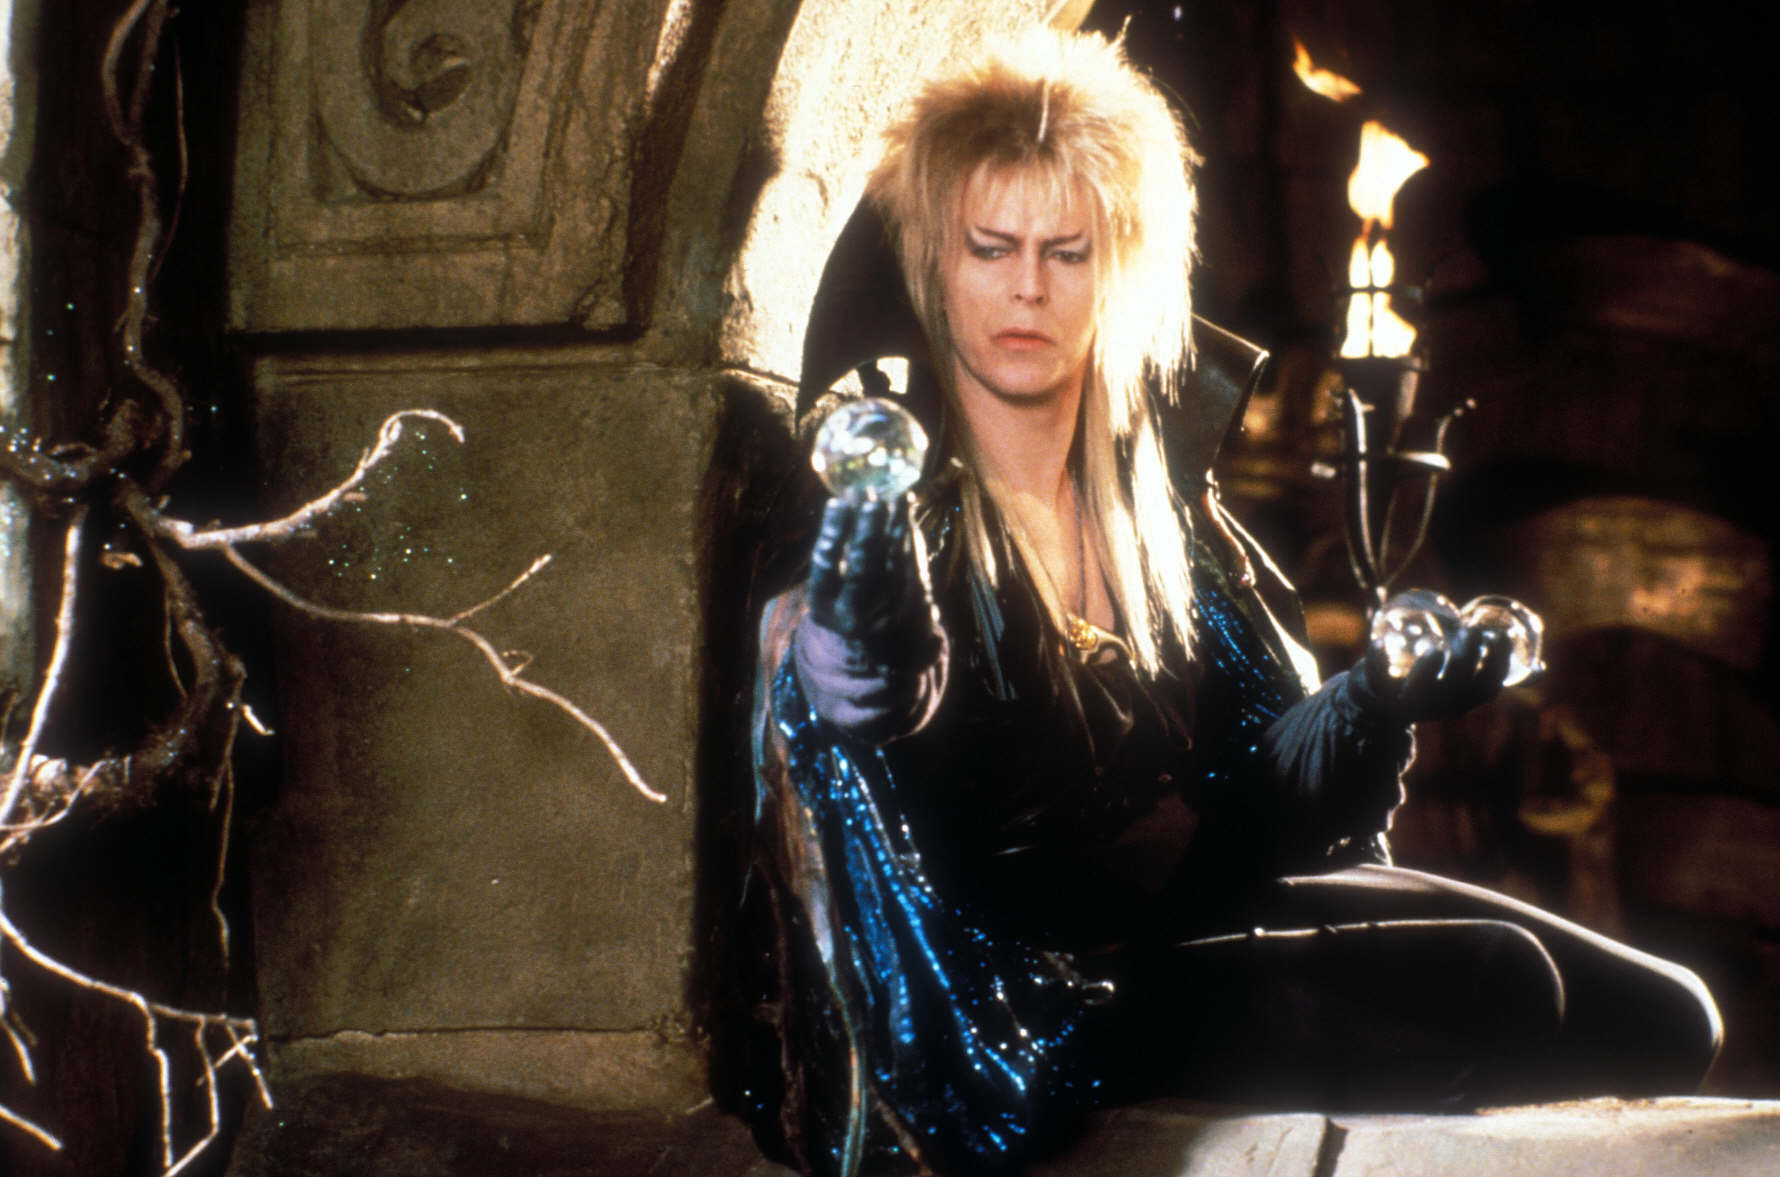 Movies that Shaped Me: Labyrinth